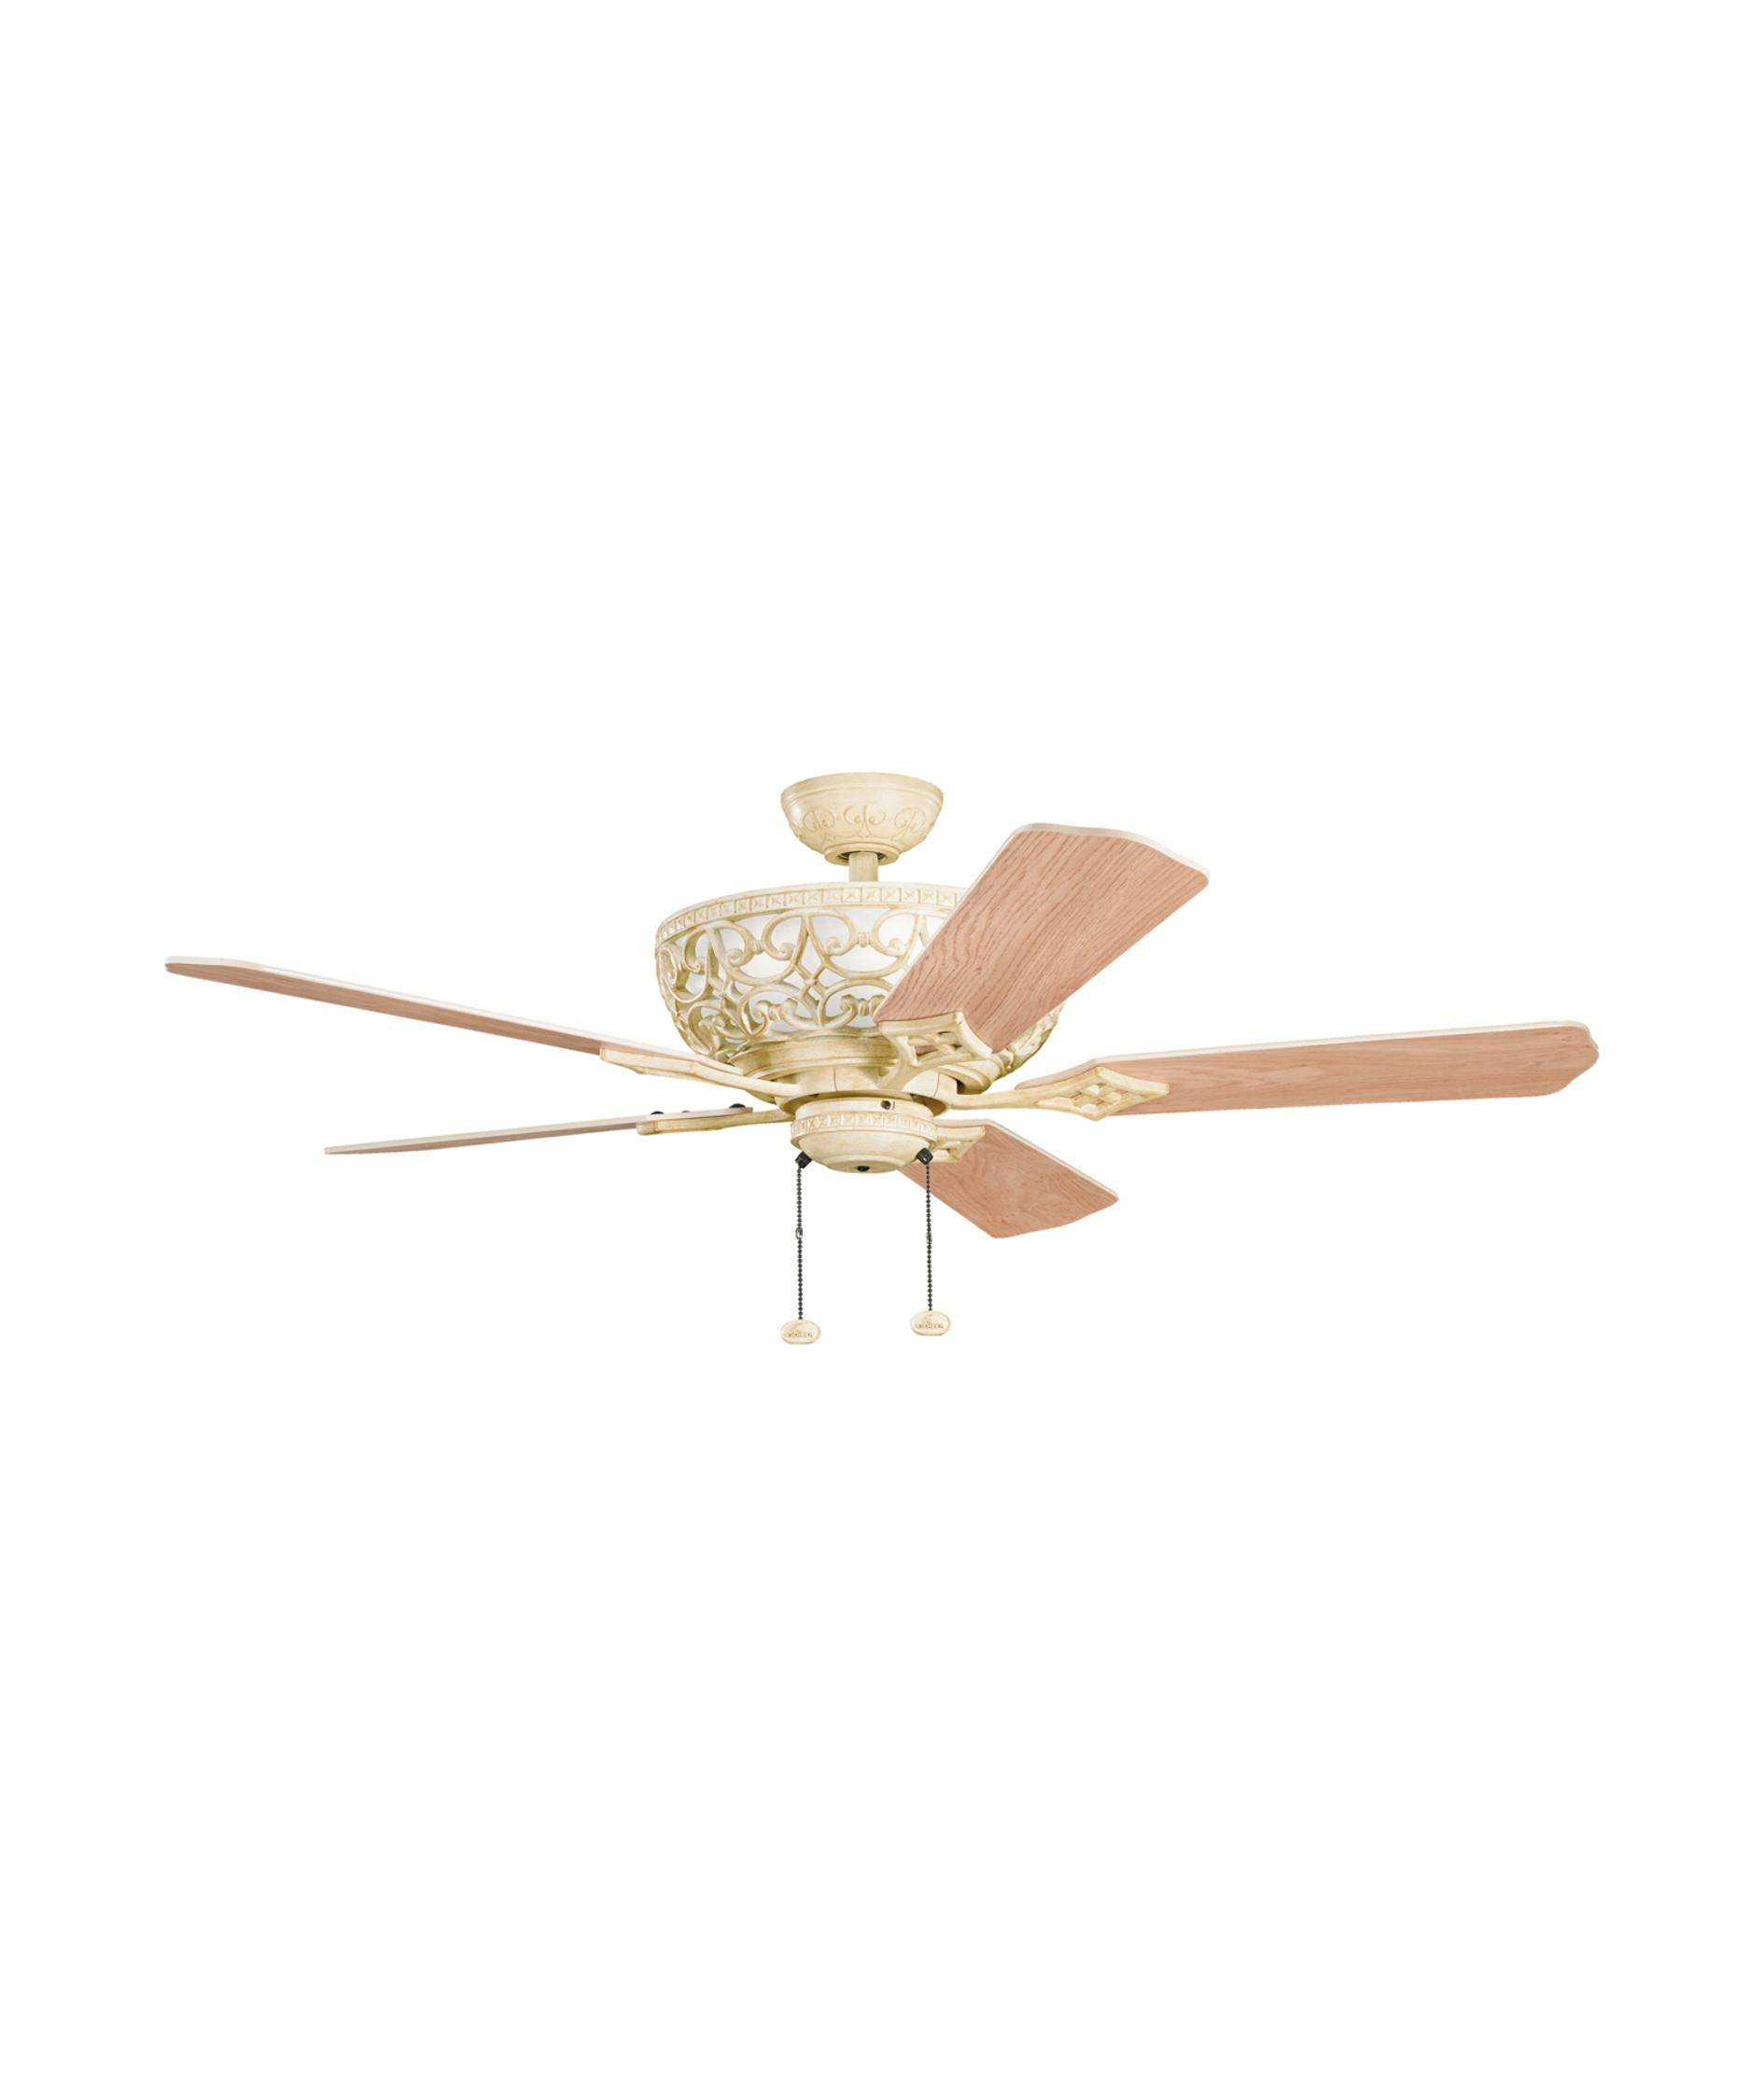 shown in aged white finish and white marble glass - Kichler Fans